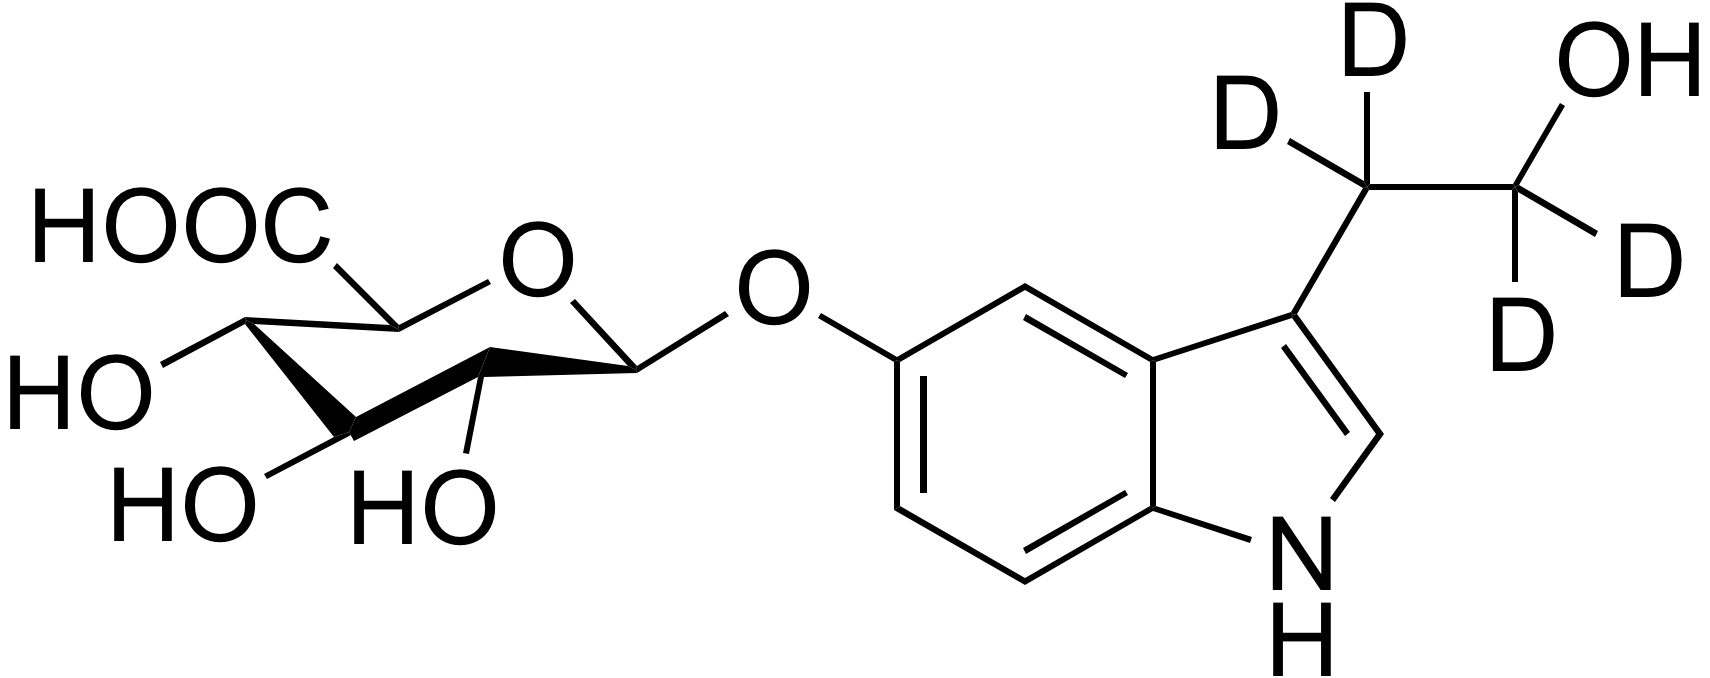 5-Hydroxytryptophol-d4 β-D-glucuronide